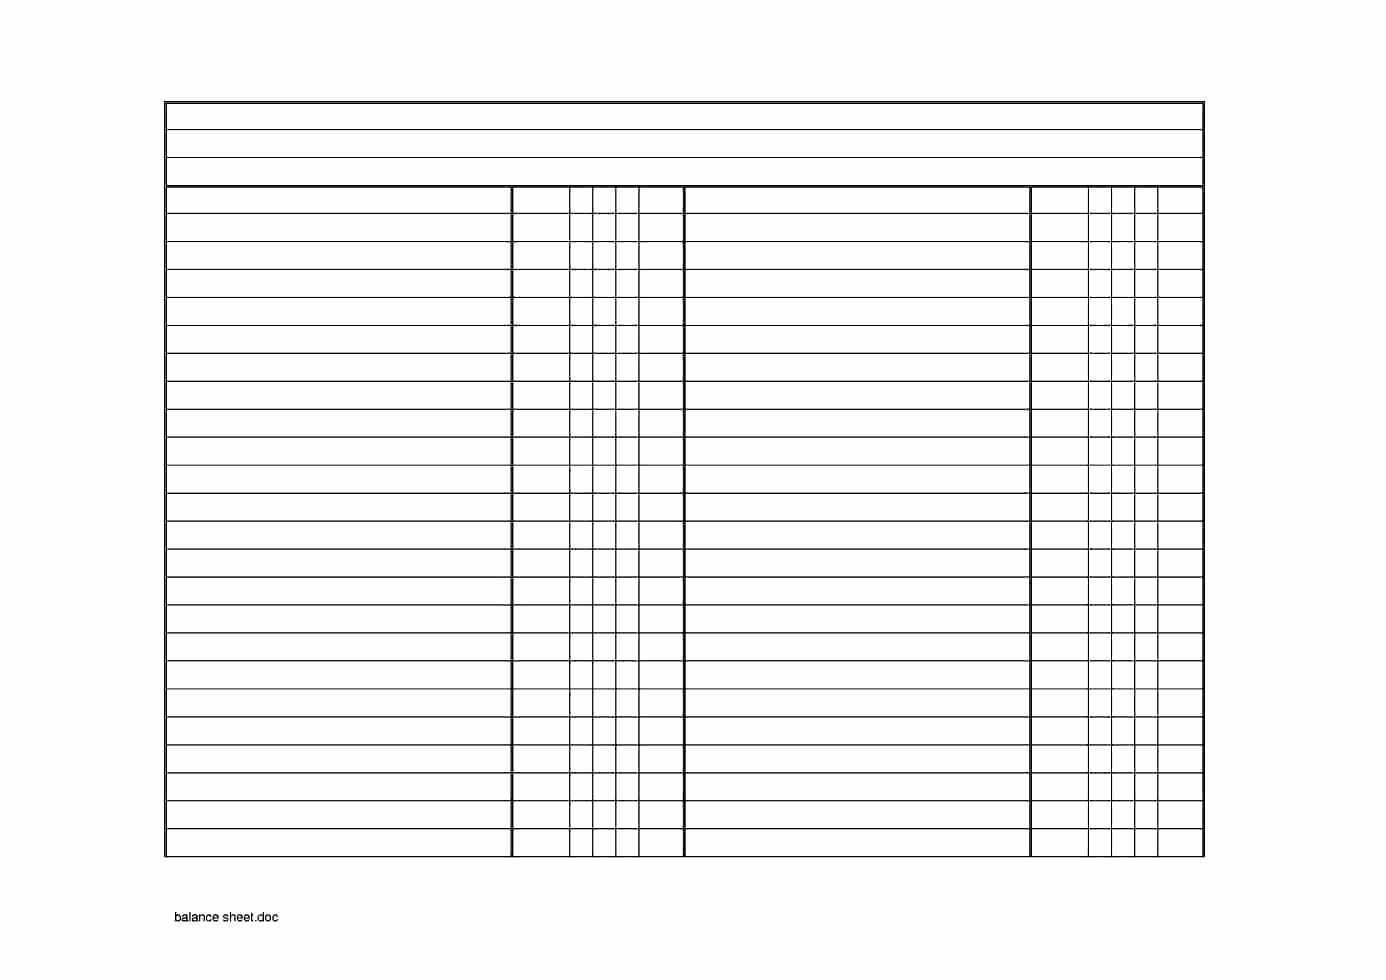 Classified Balance Sheet Template Excel Luxury Classified Balance Sheet Template Excel